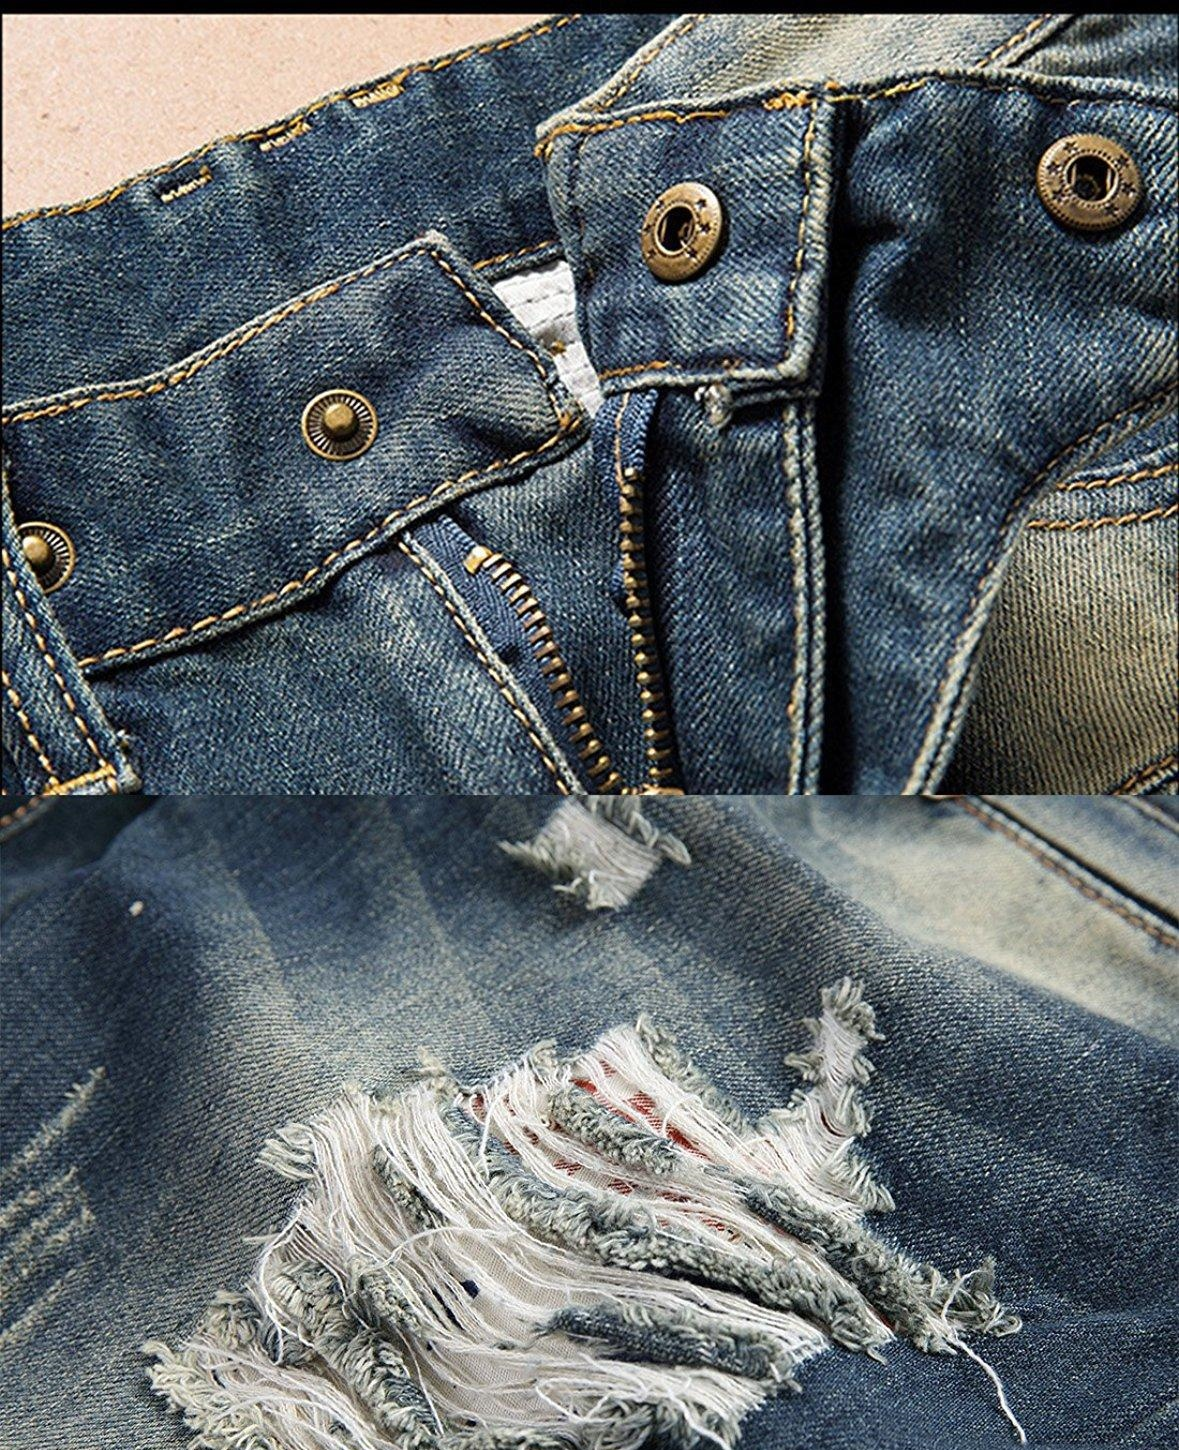 Men Distressed Ripped Jeans Fashion Designer Straight Motorcycle Biker Causal Denim Pants Streetwear Style Runway Rock Star Jeans Cool